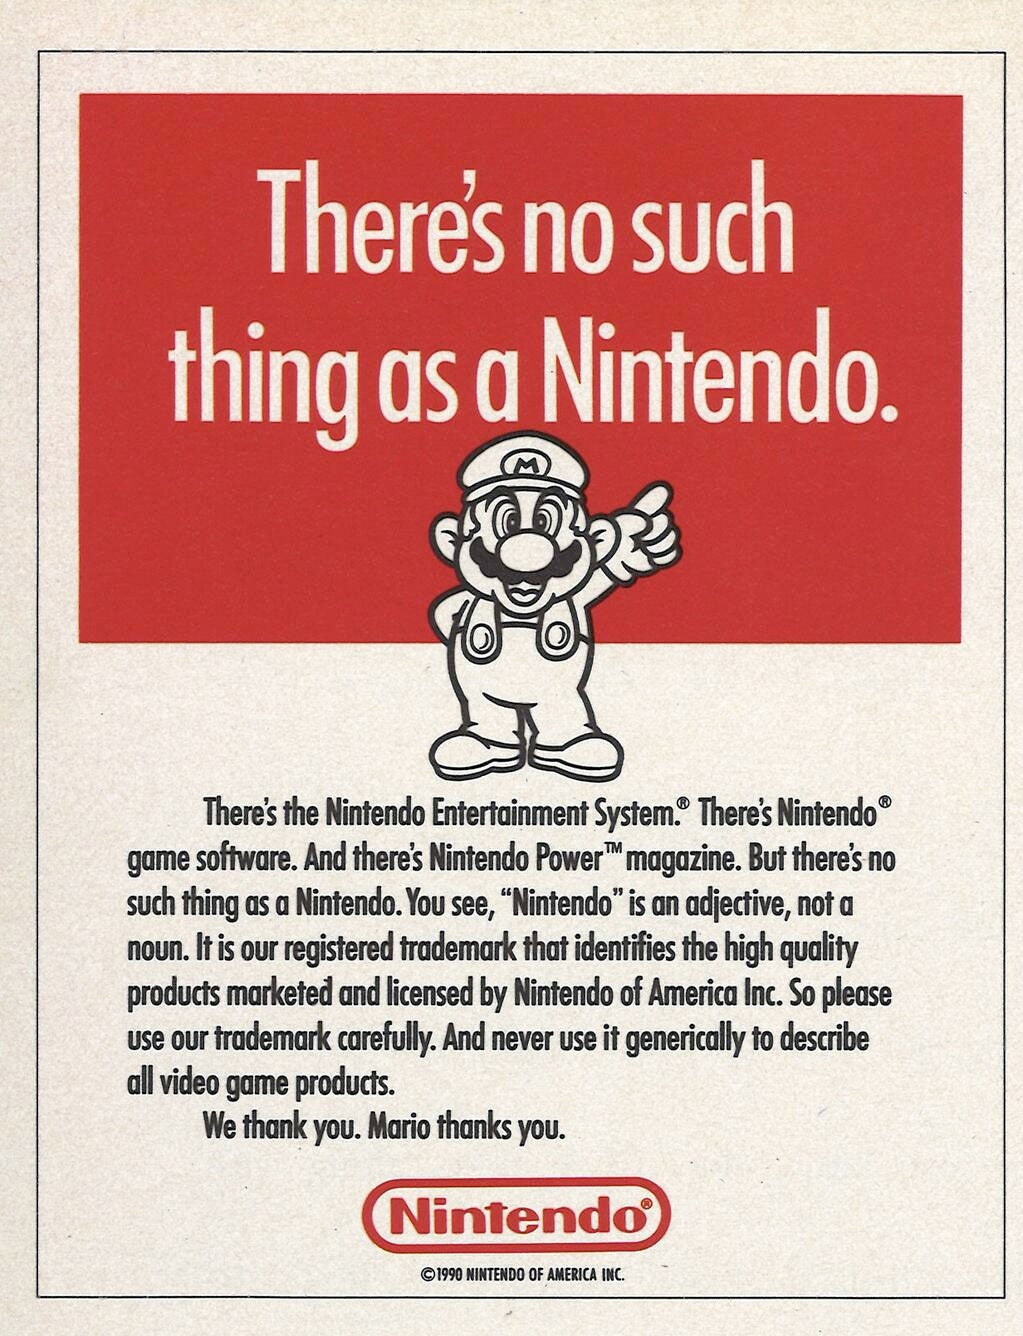 1990s poster: There's no such thing as Nintendo